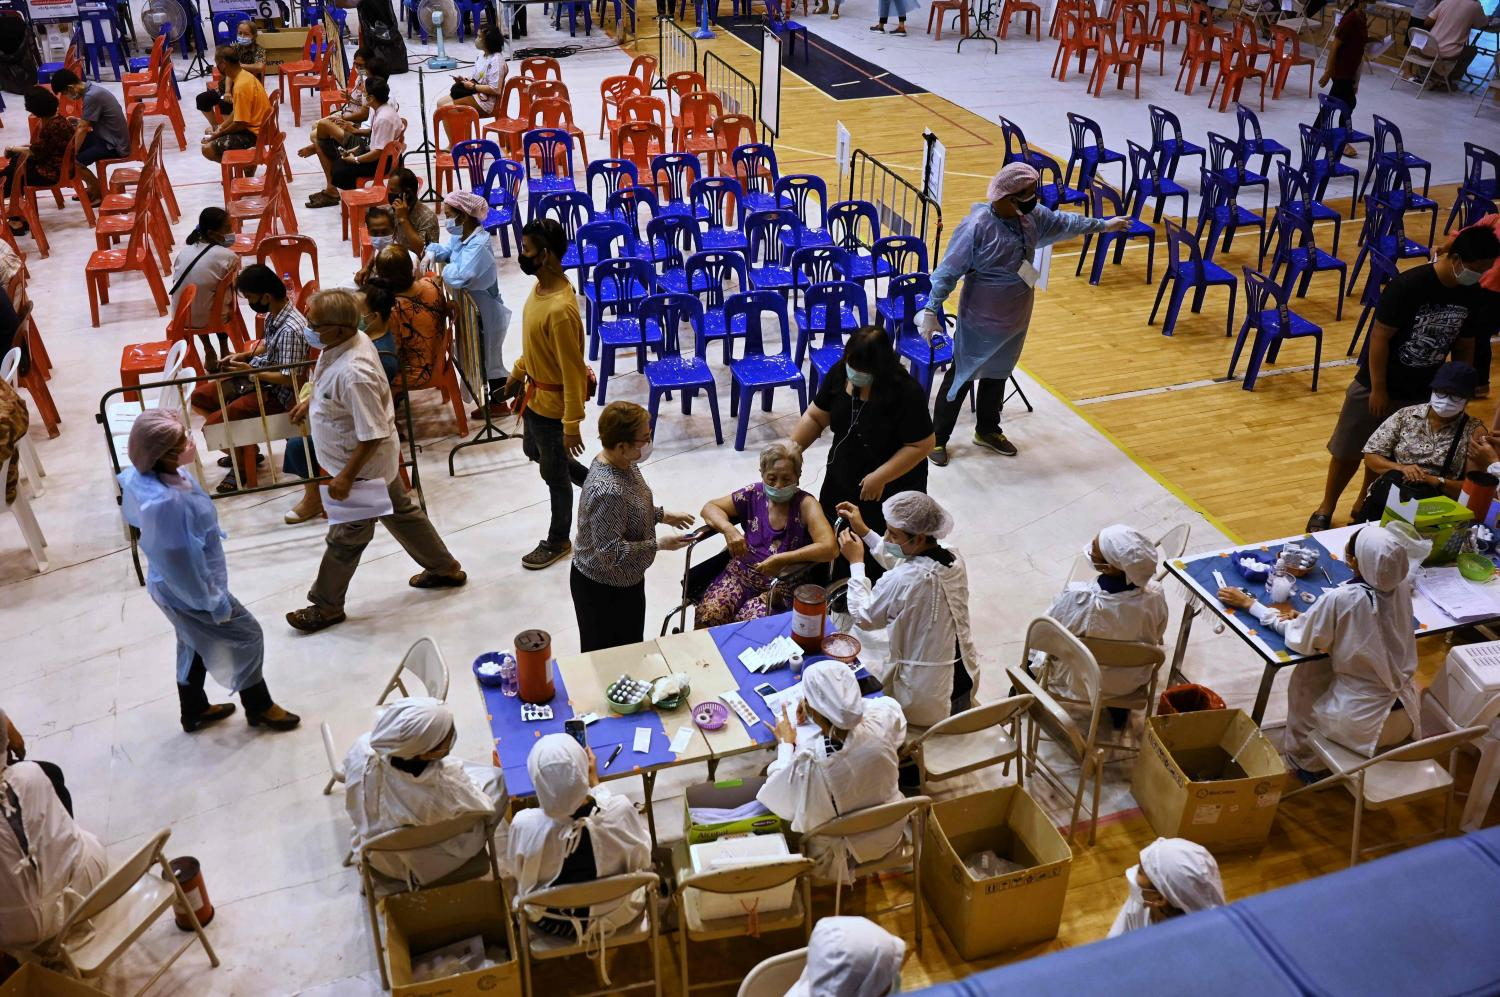 Health workers administer doses of the AstraZeneca vaccine to elderly residents at a sports stadium in Phuket on Tuesday.(AFP photo)